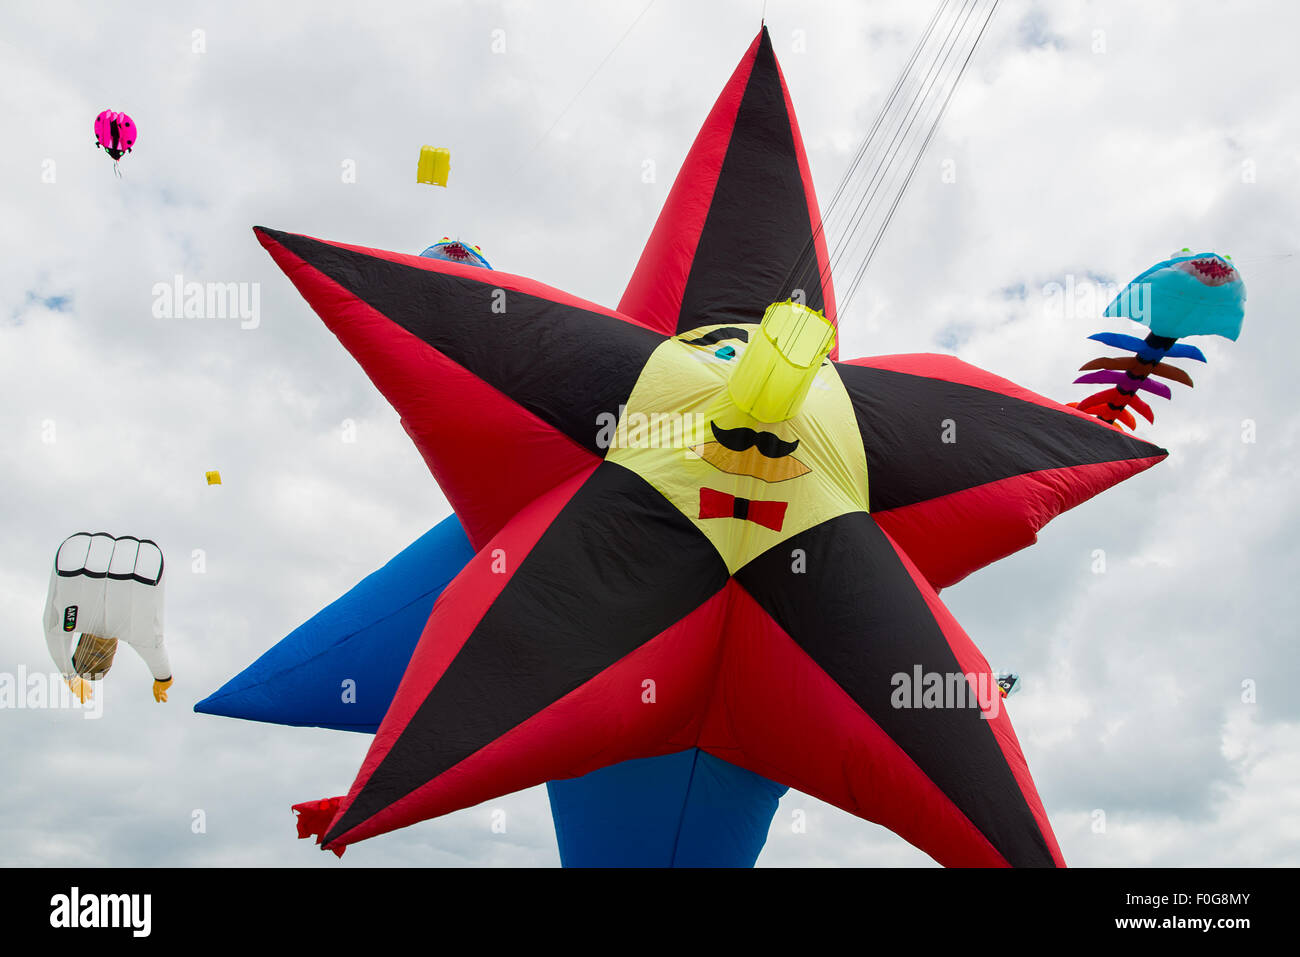 Portsmouth, UK. 15th August 2015. A large star shaped kite flies at the International Kite Festival. Credit:  MeonStock/Alamy Stock Photo